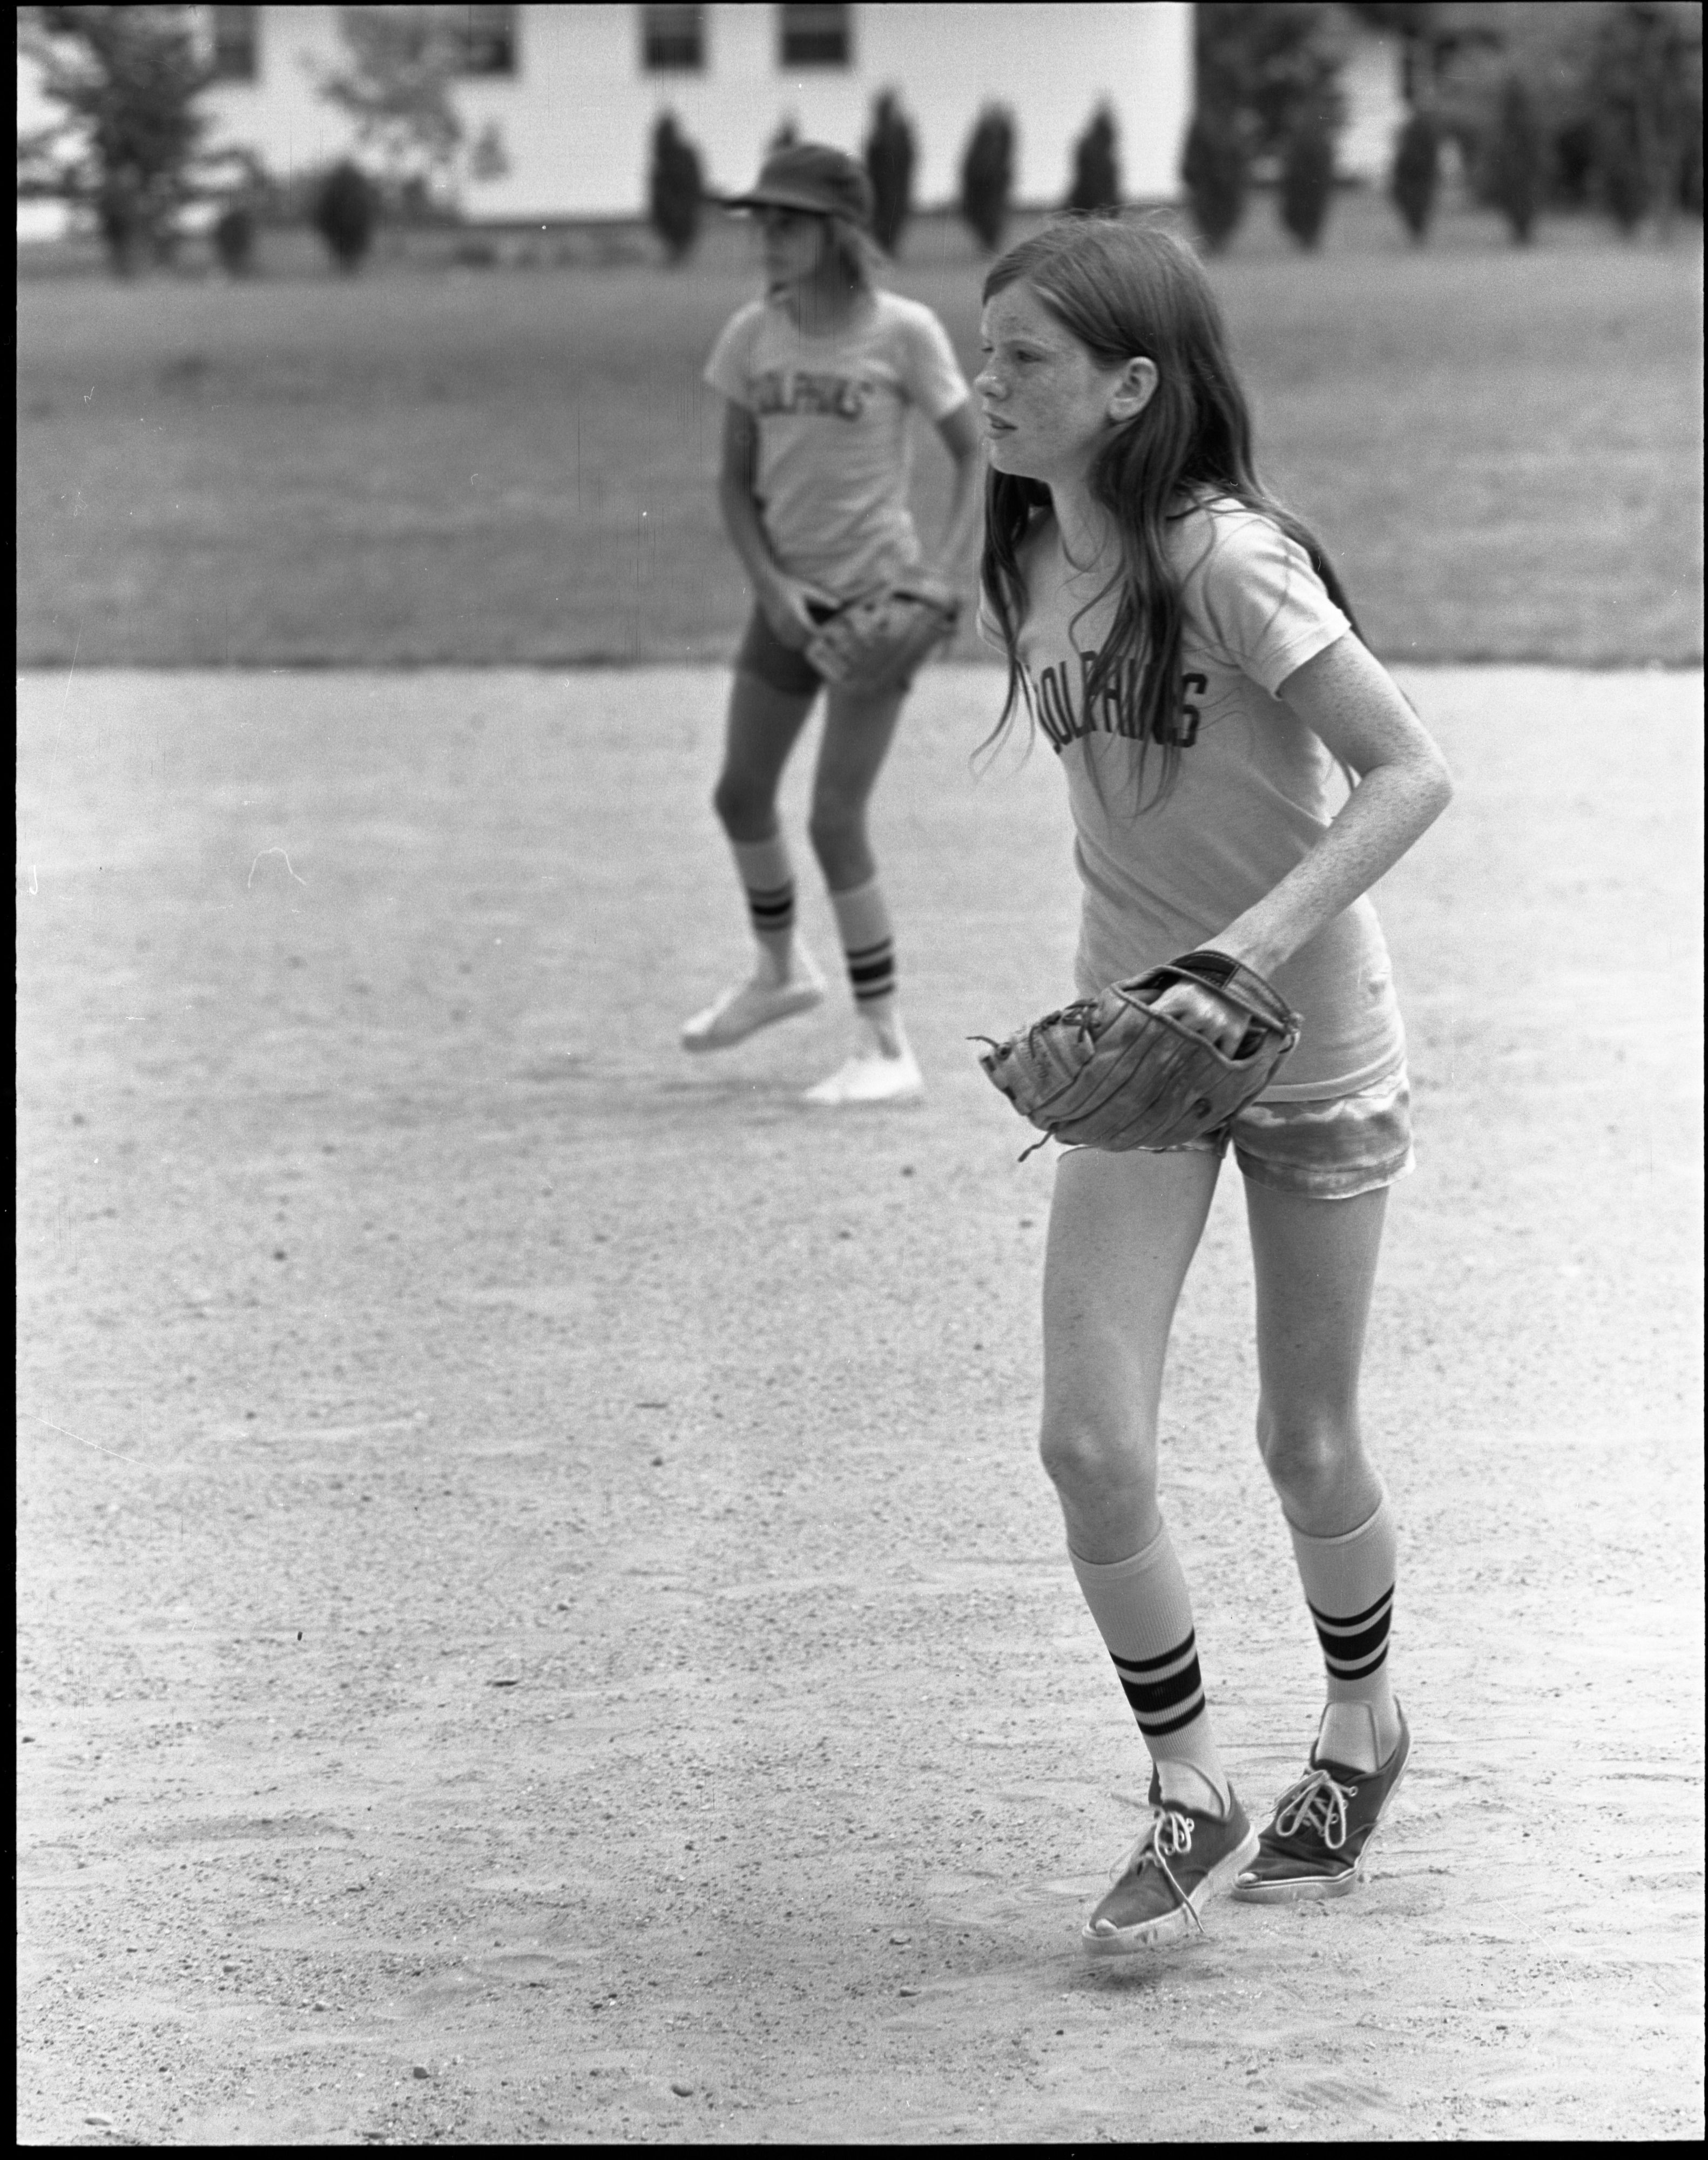 Girls Softball - Dolphins Team Members On The Field, July 1972 image